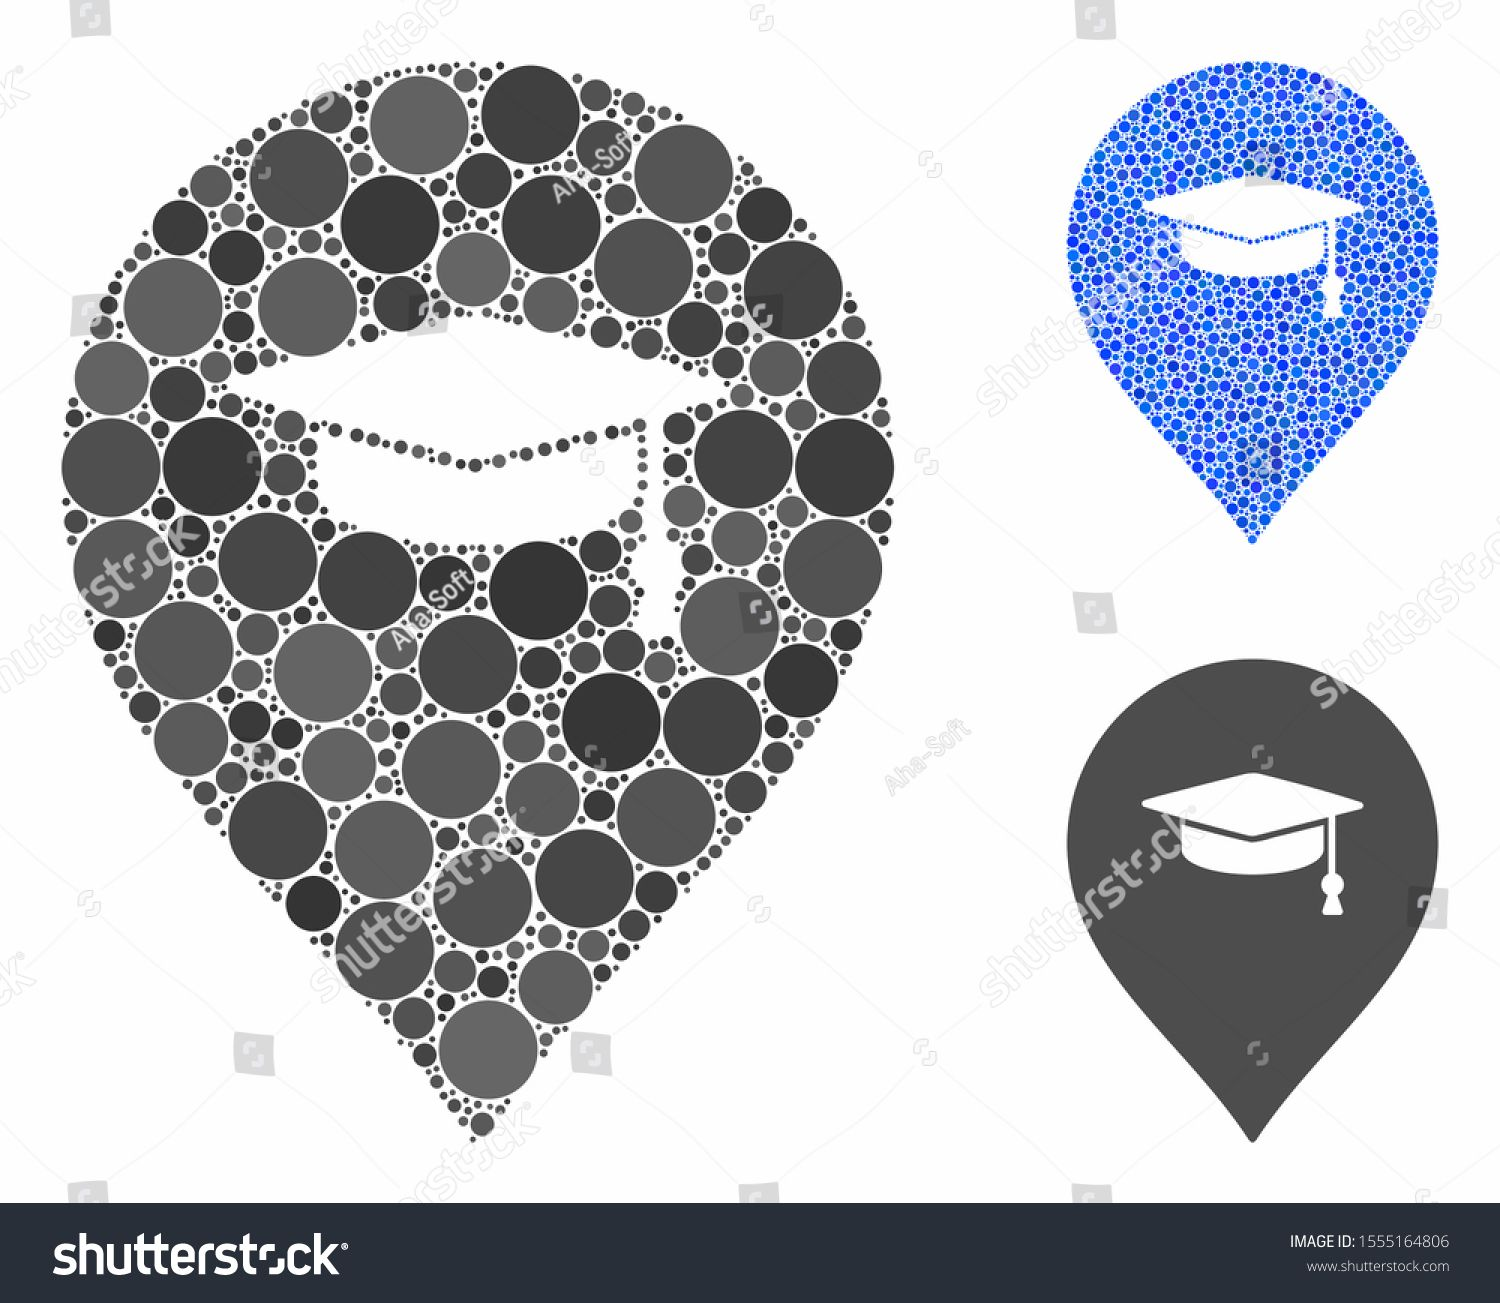 Education marker composition of round dots in variable